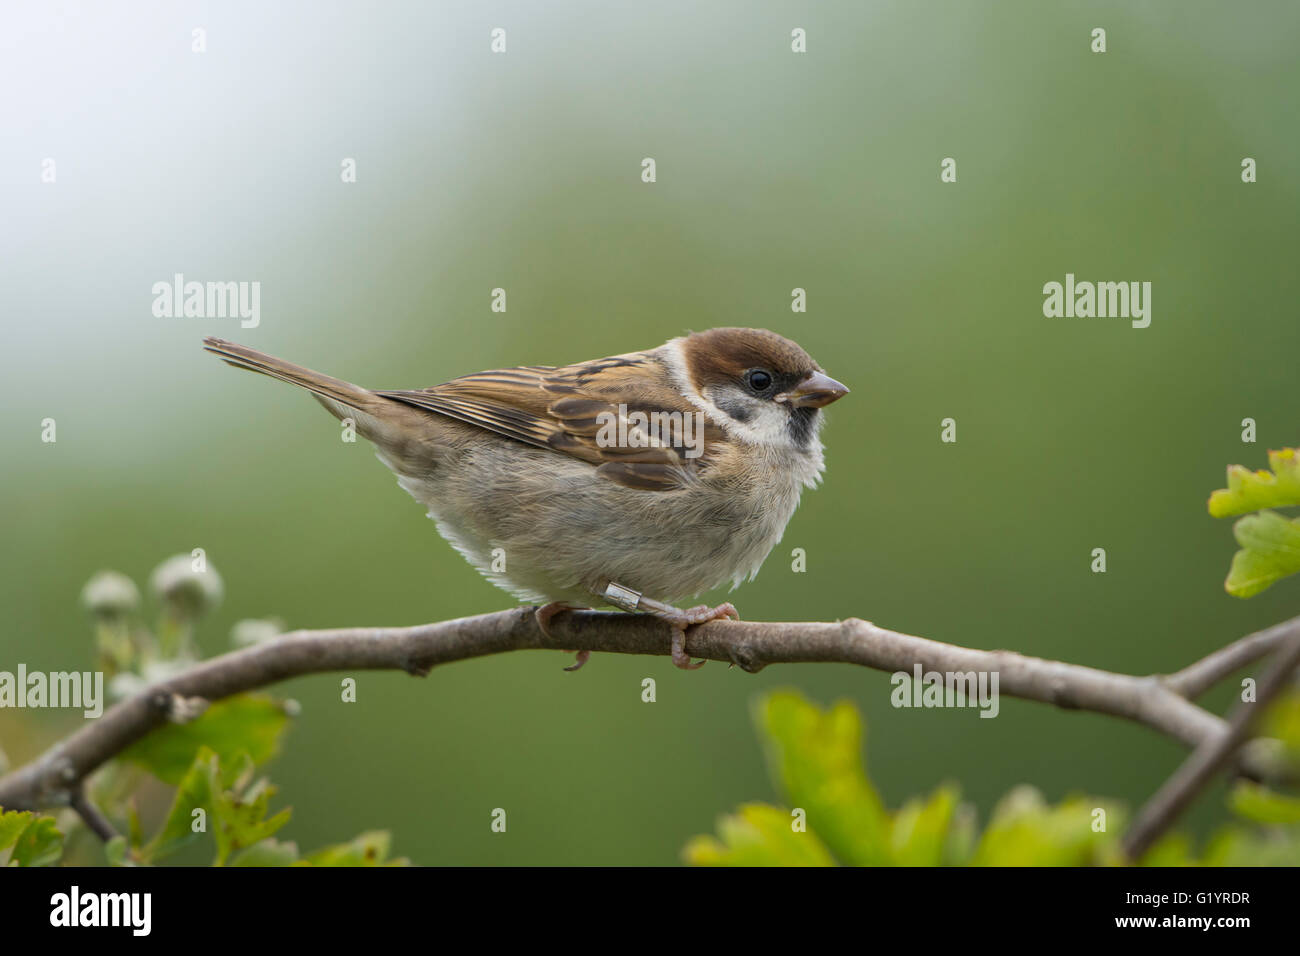 young tree sparrow passer montanus stockfotos young tree sparrow passer montanus bilder alamy. Black Bedroom Furniture Sets. Home Design Ideas